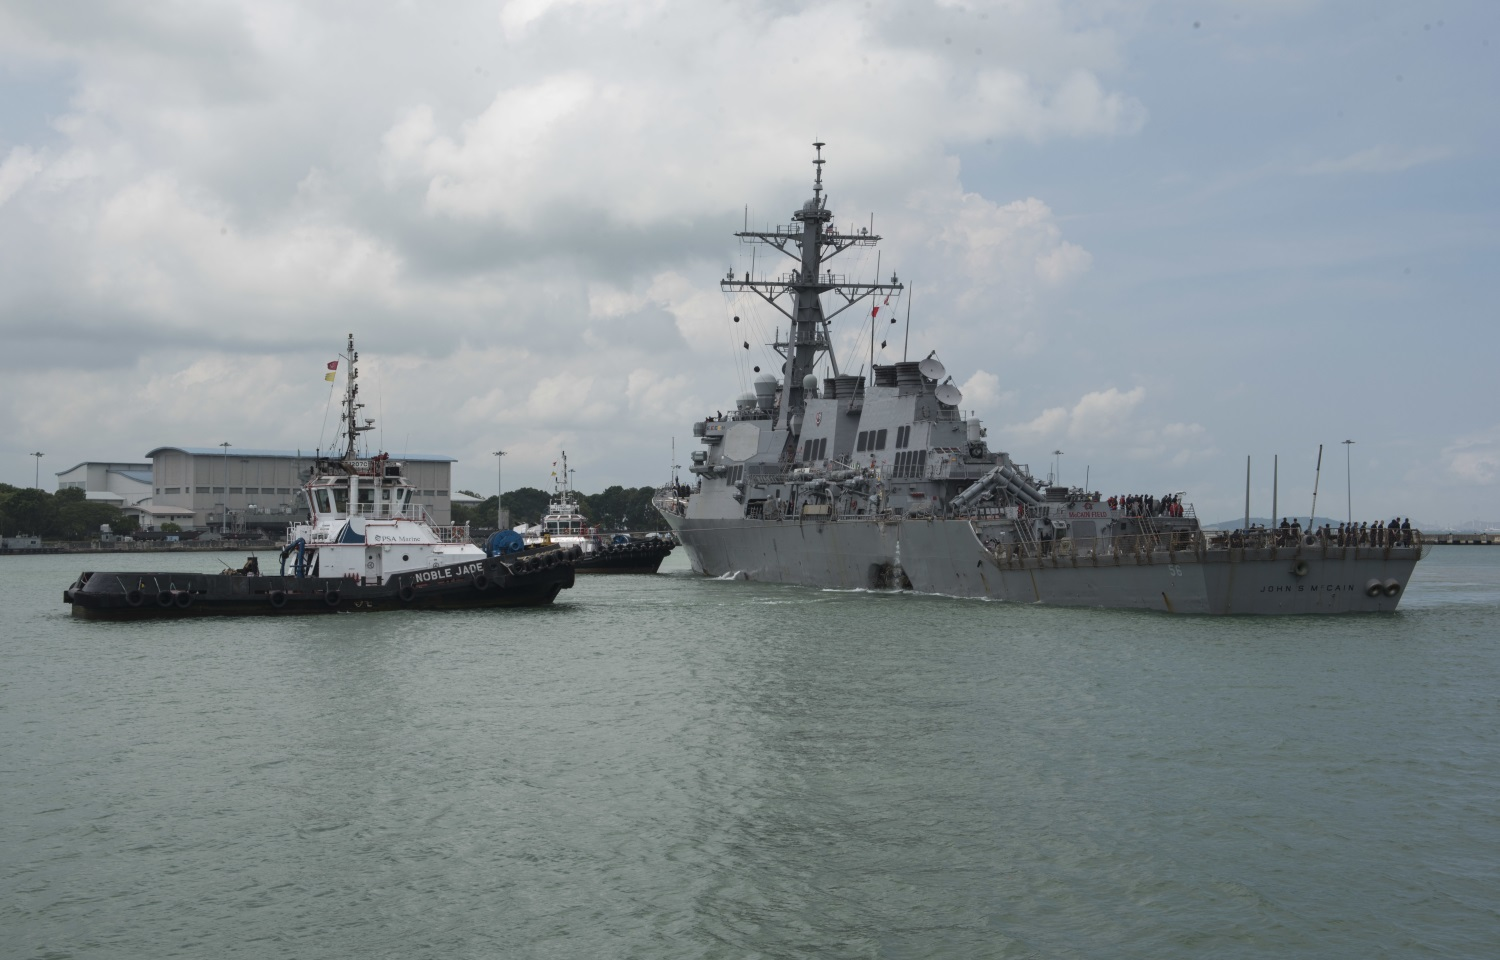 In this Aug. 21, 2017, photo provided by U.S. Navy, tugboats from Singapore assist the Guided-missile destroyer USS John S. McCain (DDG 56) as it steers towards Changi Naval Base, Singapore, following a collision with the merchant vessel Alnic MC while underway east of the Straits of Malacca and Singapore. (MC2 Joshua Fulton/Navy via AP)